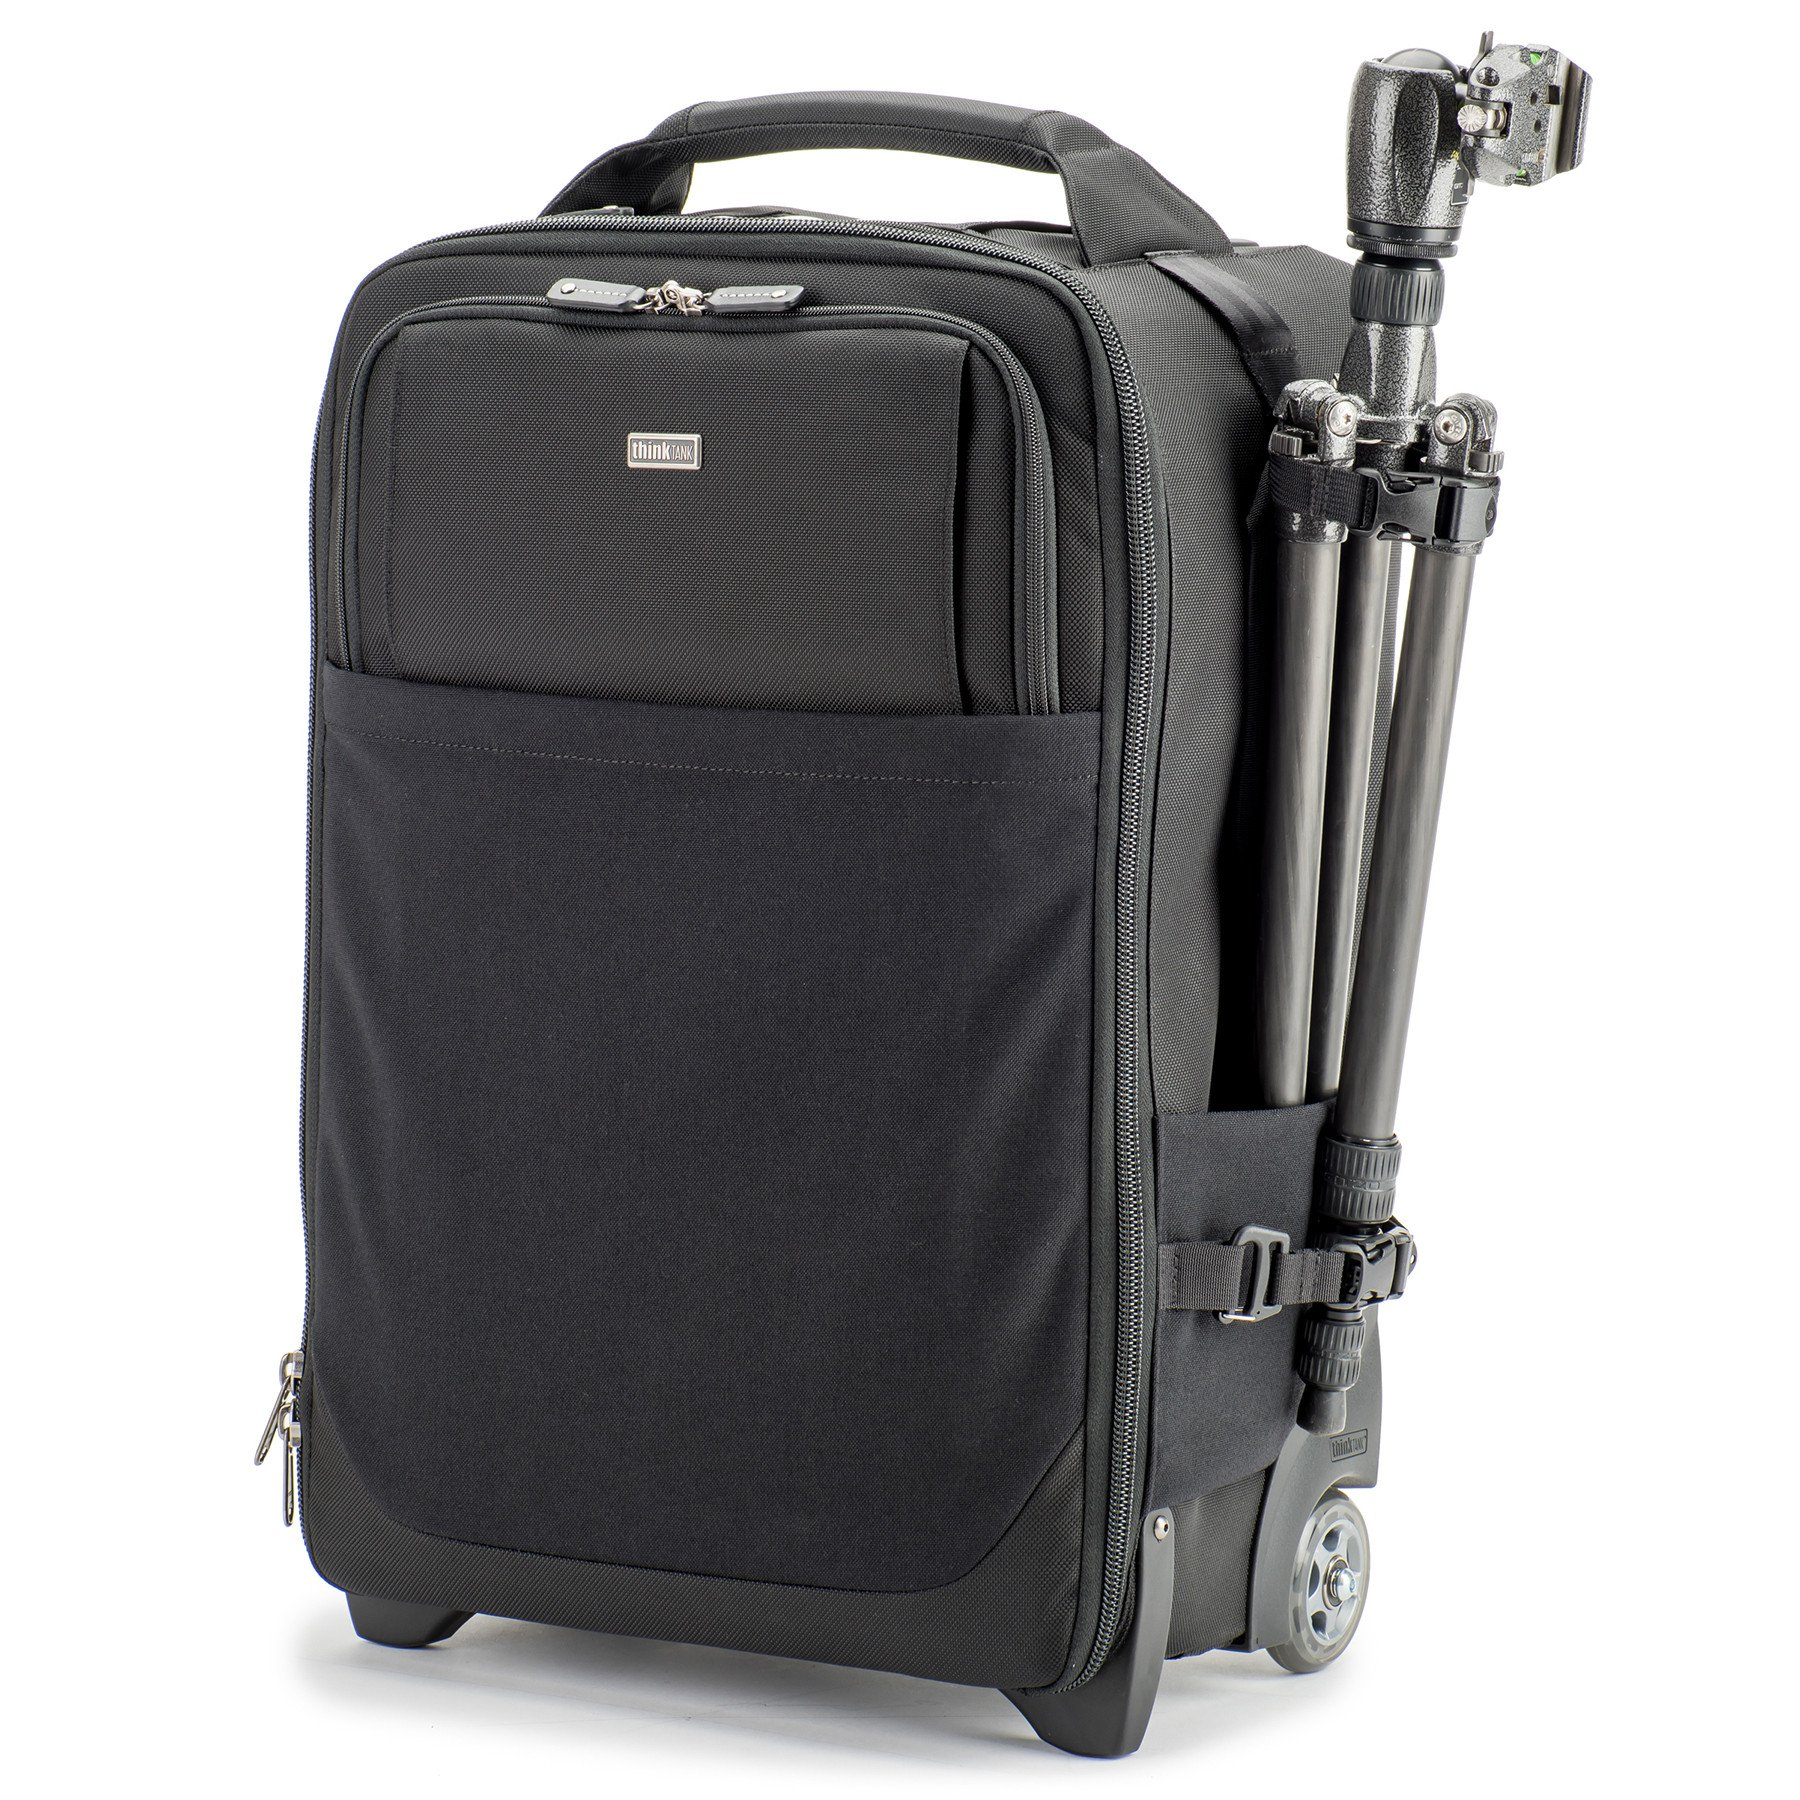 Think Tank Airport Security Roller Bag